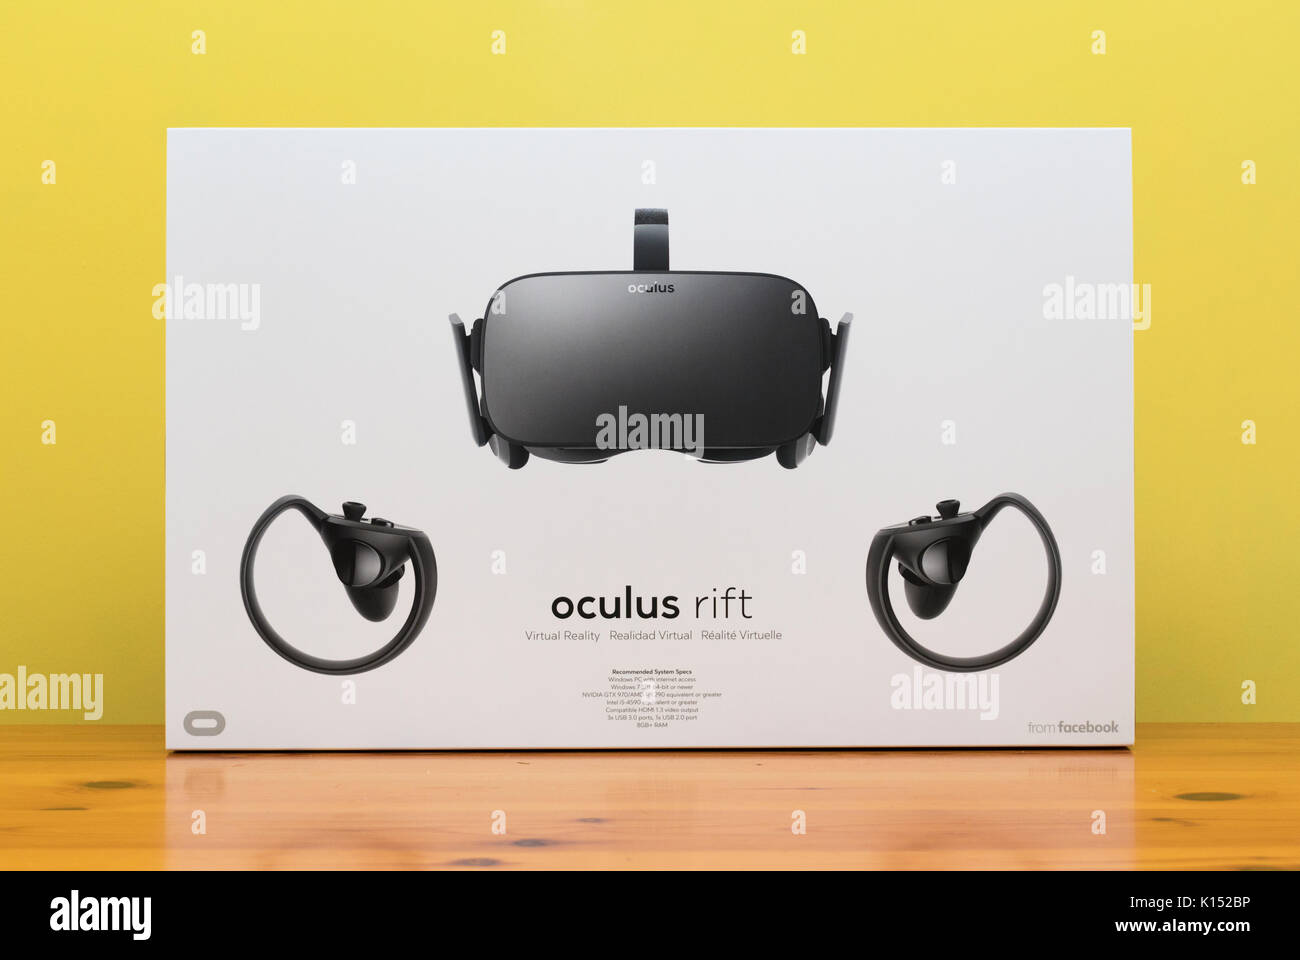 Oculus rift stock options